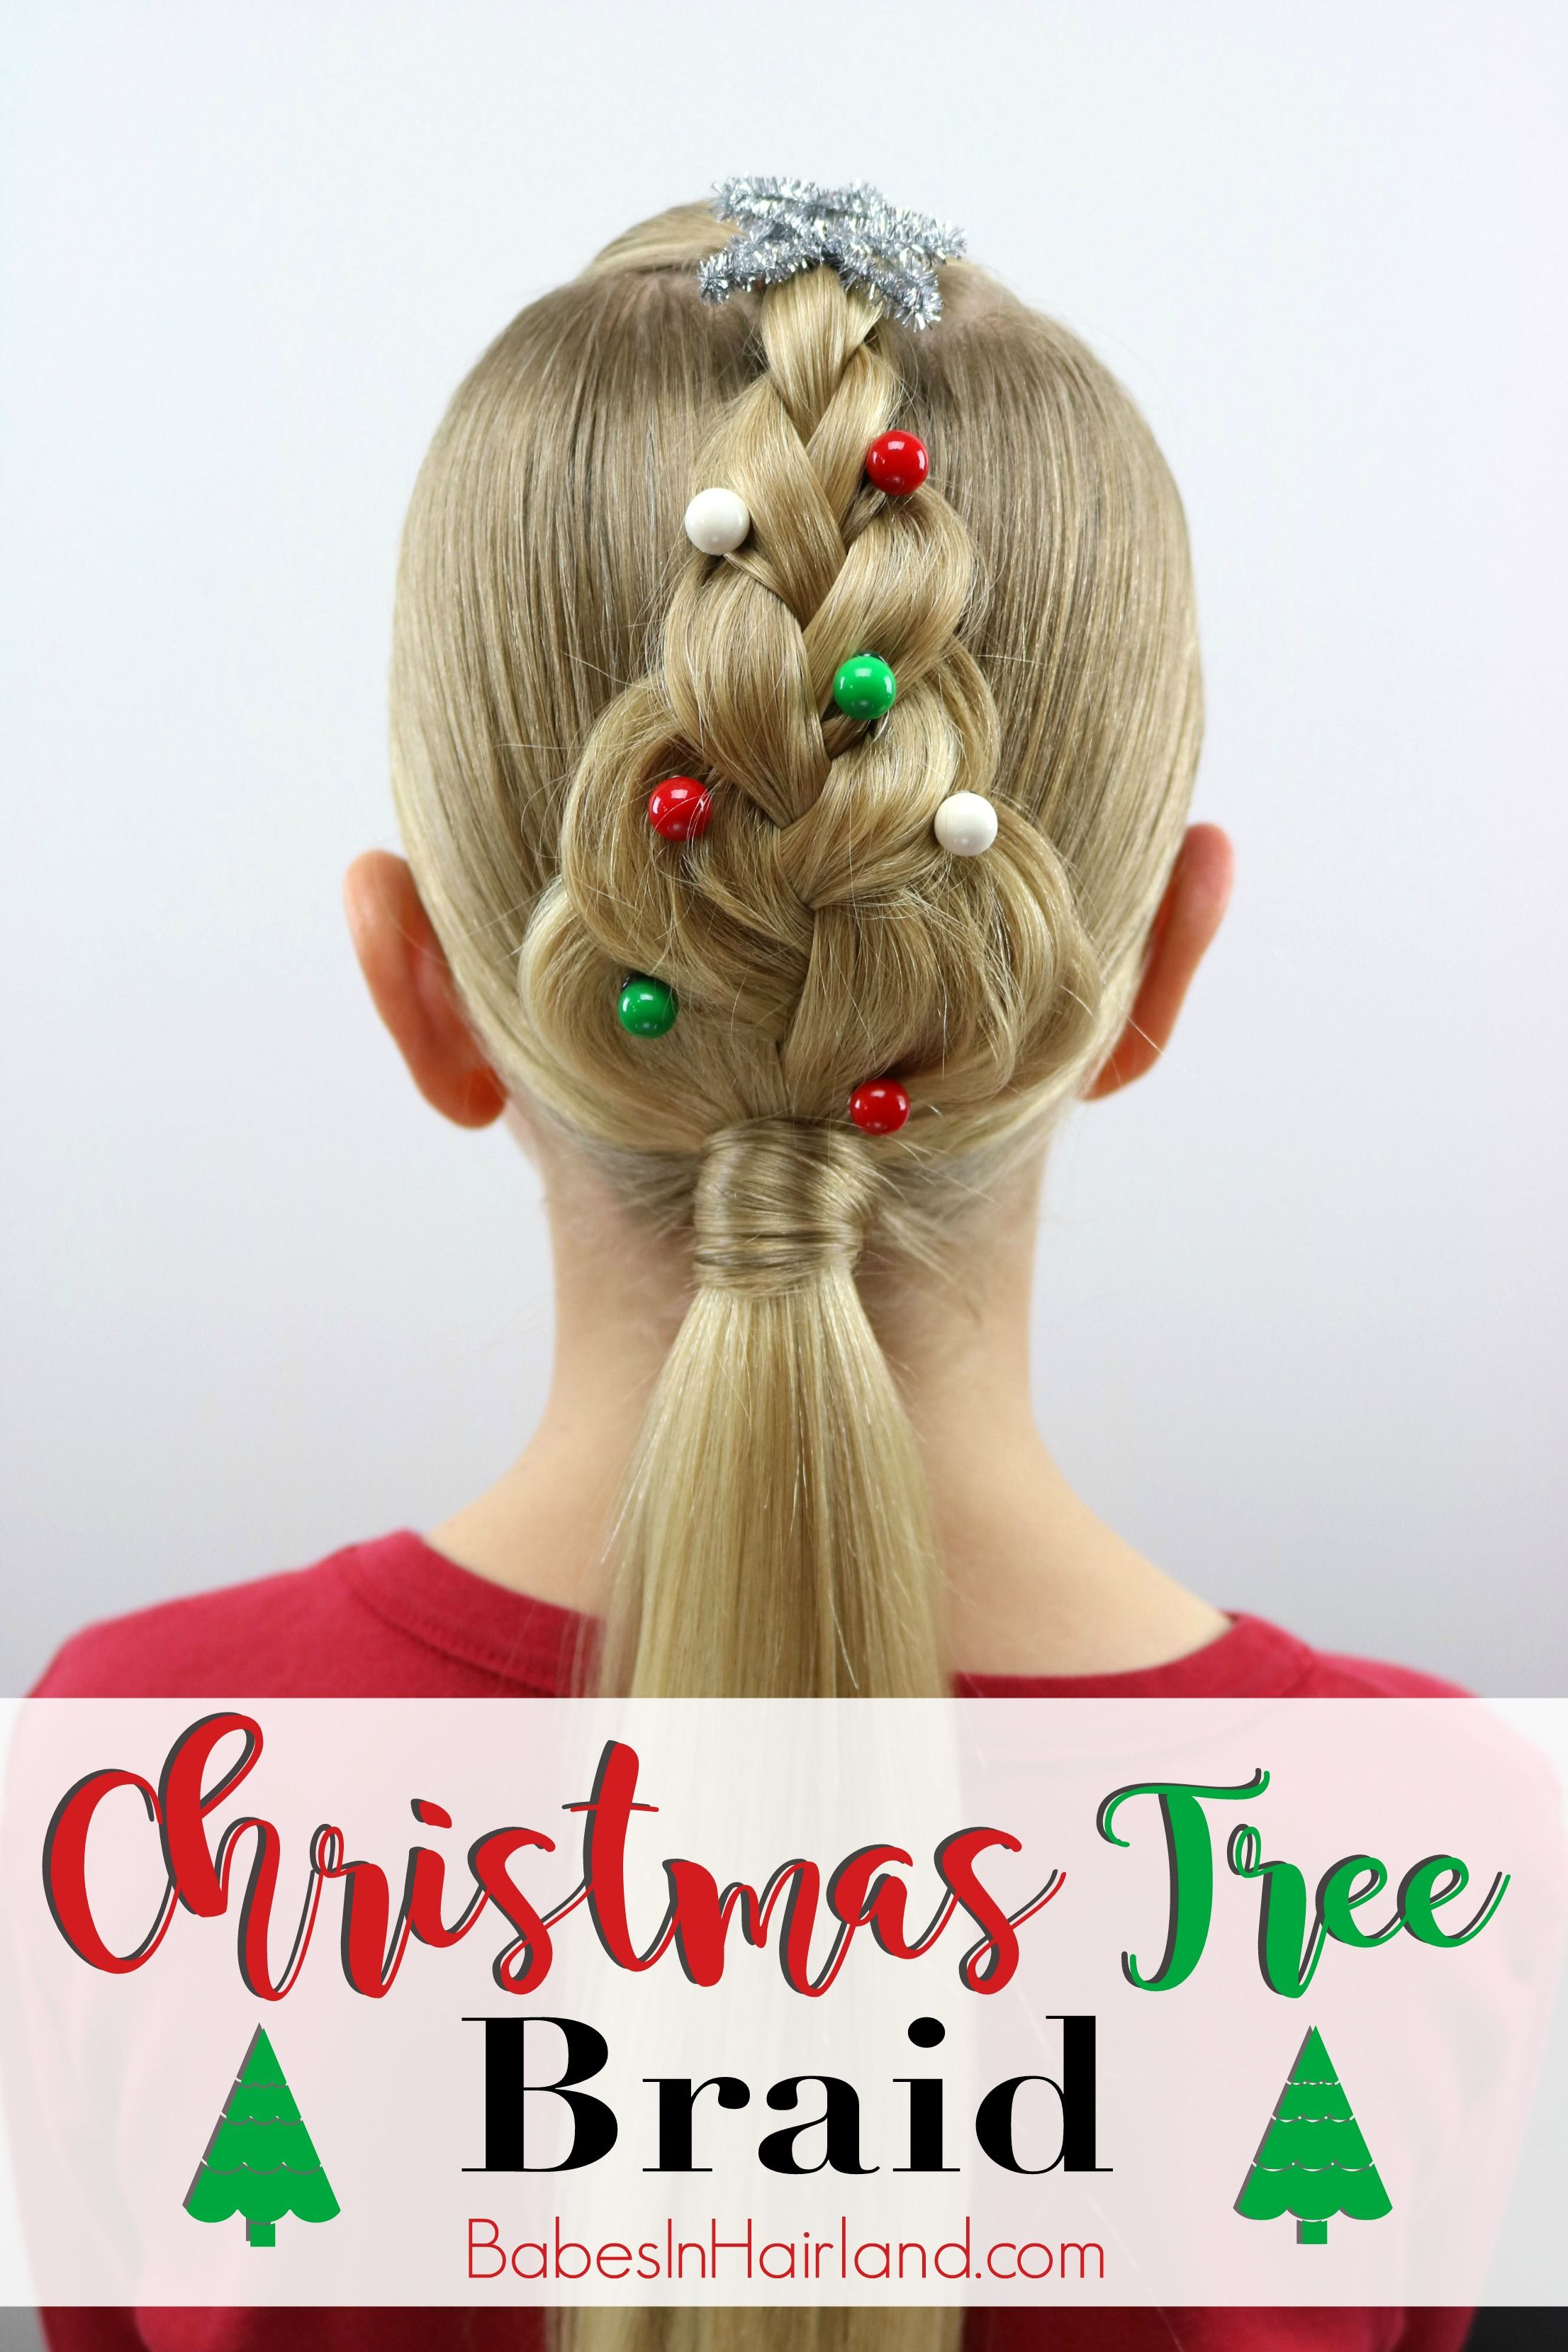 Christmas Hairstyles Easy.Christmas Tree Braid Top Bloggers To Follow On